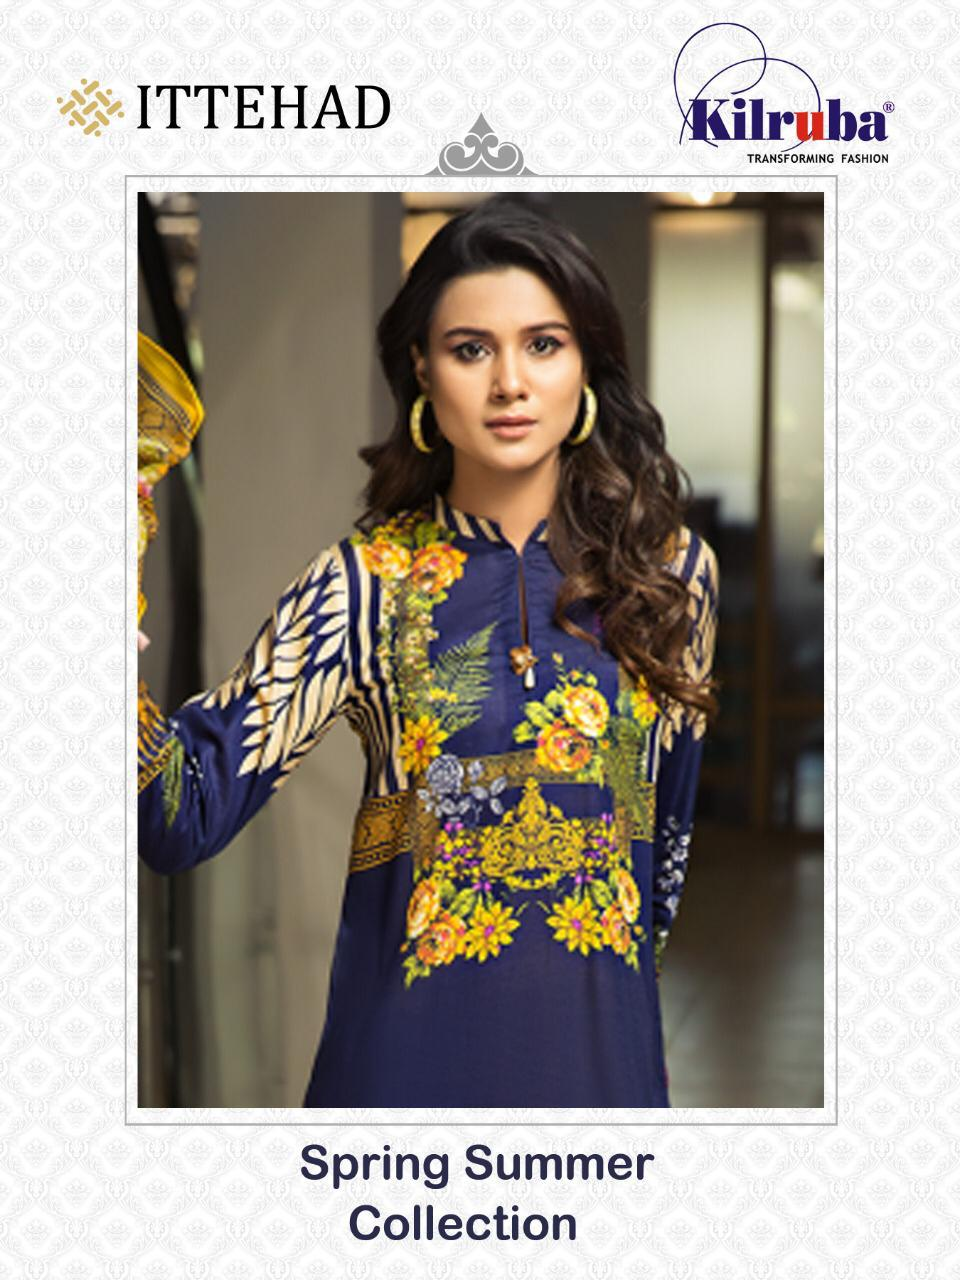 Kilruba Ittehad Stylish Cotton Digital Print Pakistani Suit Catalog at Wholesale rate